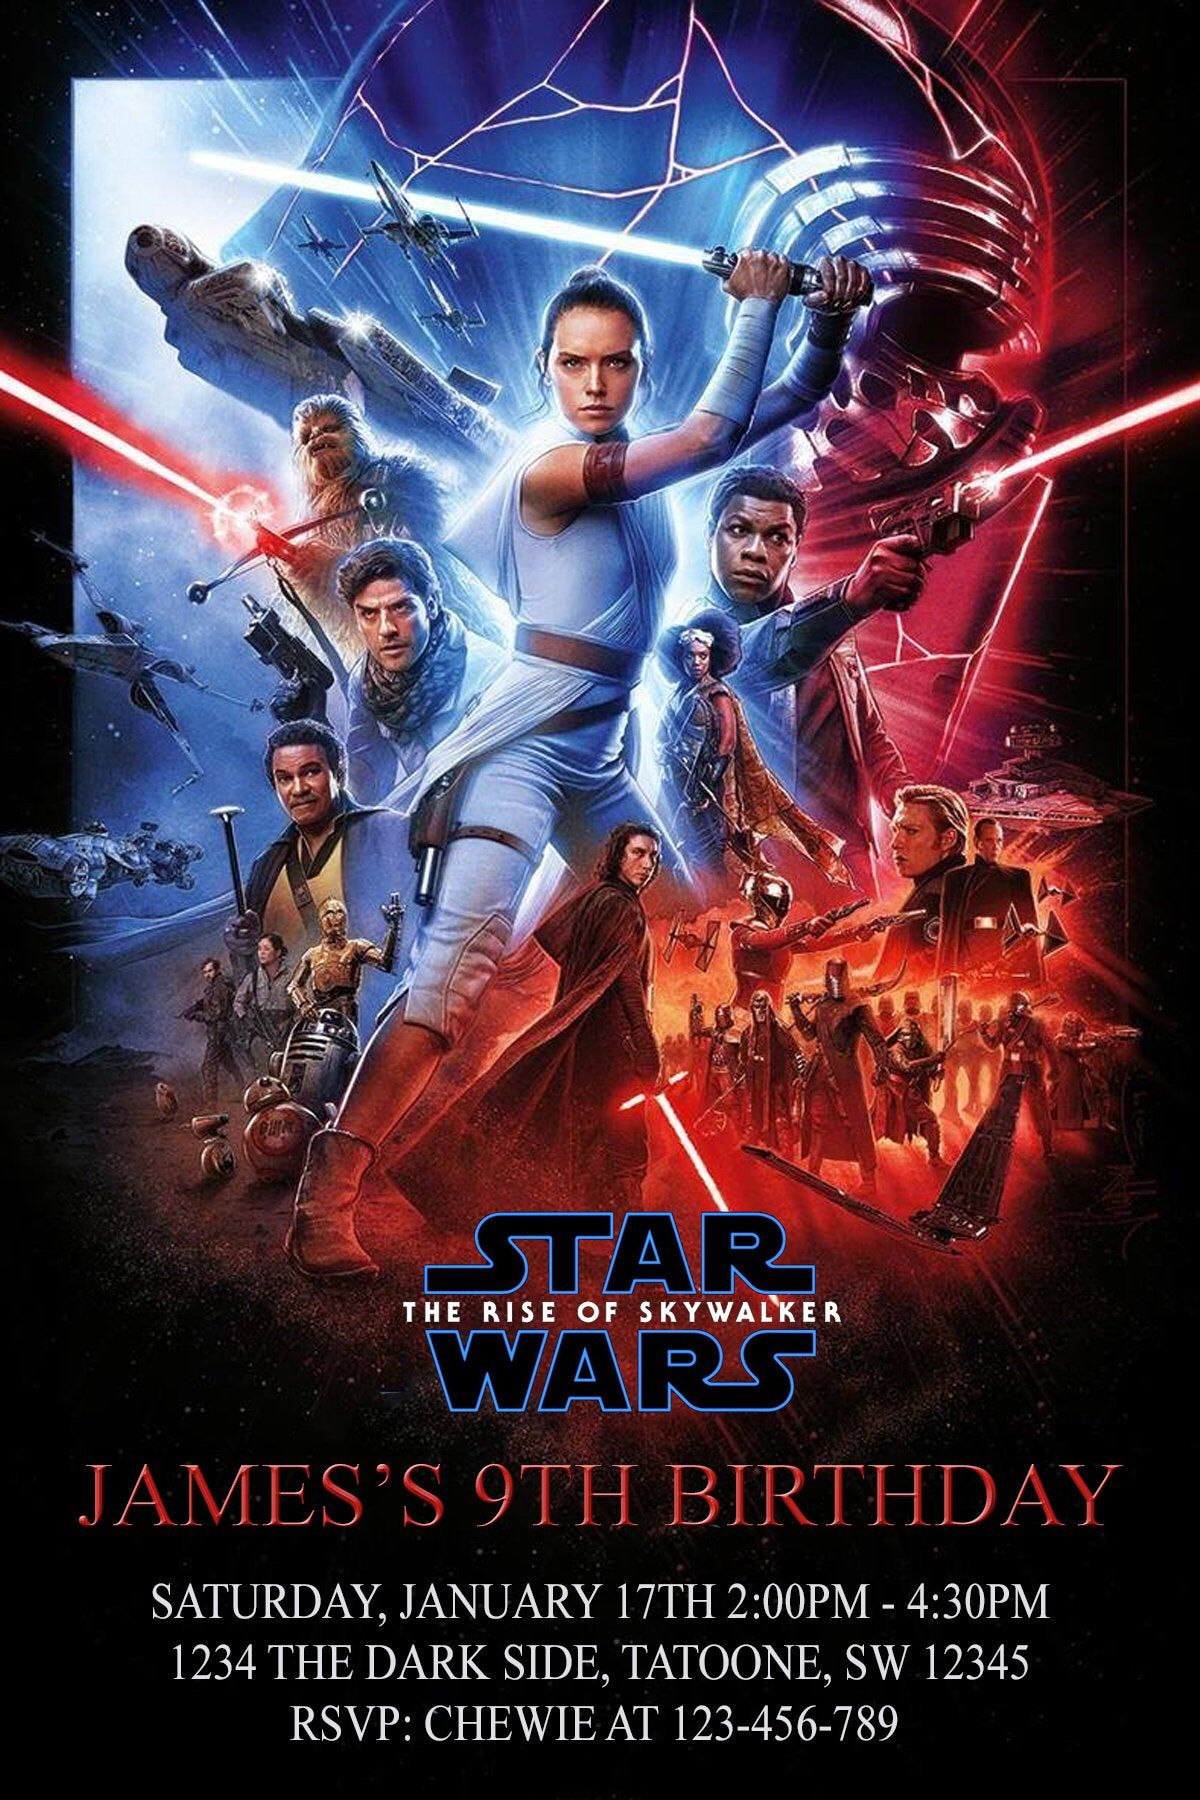 Star Wars Birthday Invitation Rise Of Skywalker Digital File Printable In 2020 Star Wars Watch Star Wars Episodes Star Wars Movie